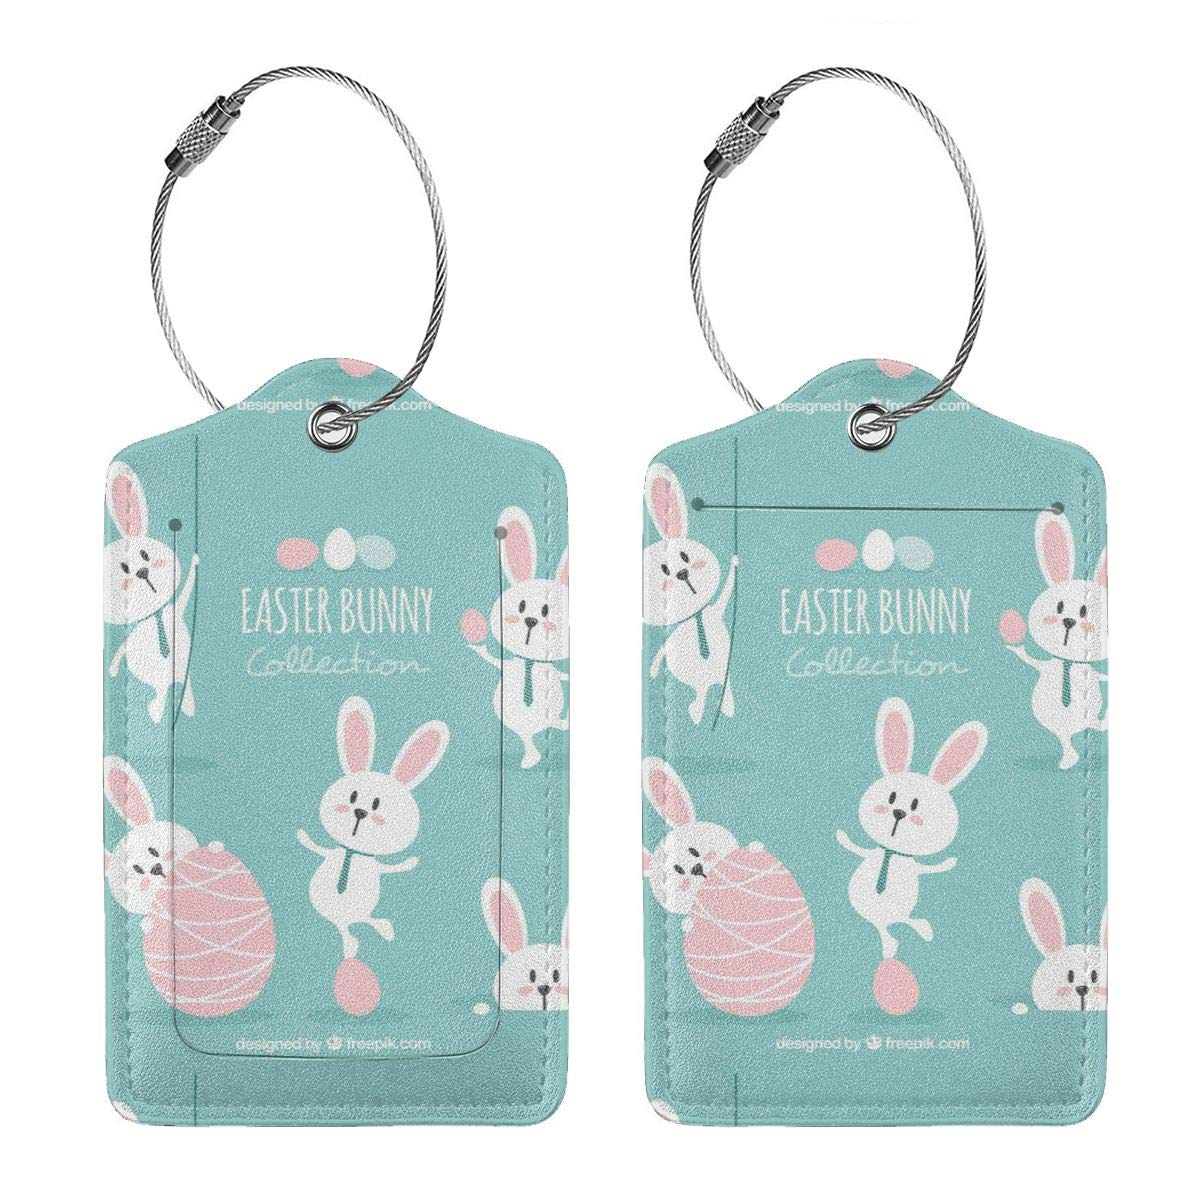 Lovely Easter Bunny Leather Luggage Tags Personalized Flexible Custom Travel Tags With Privacy Flap